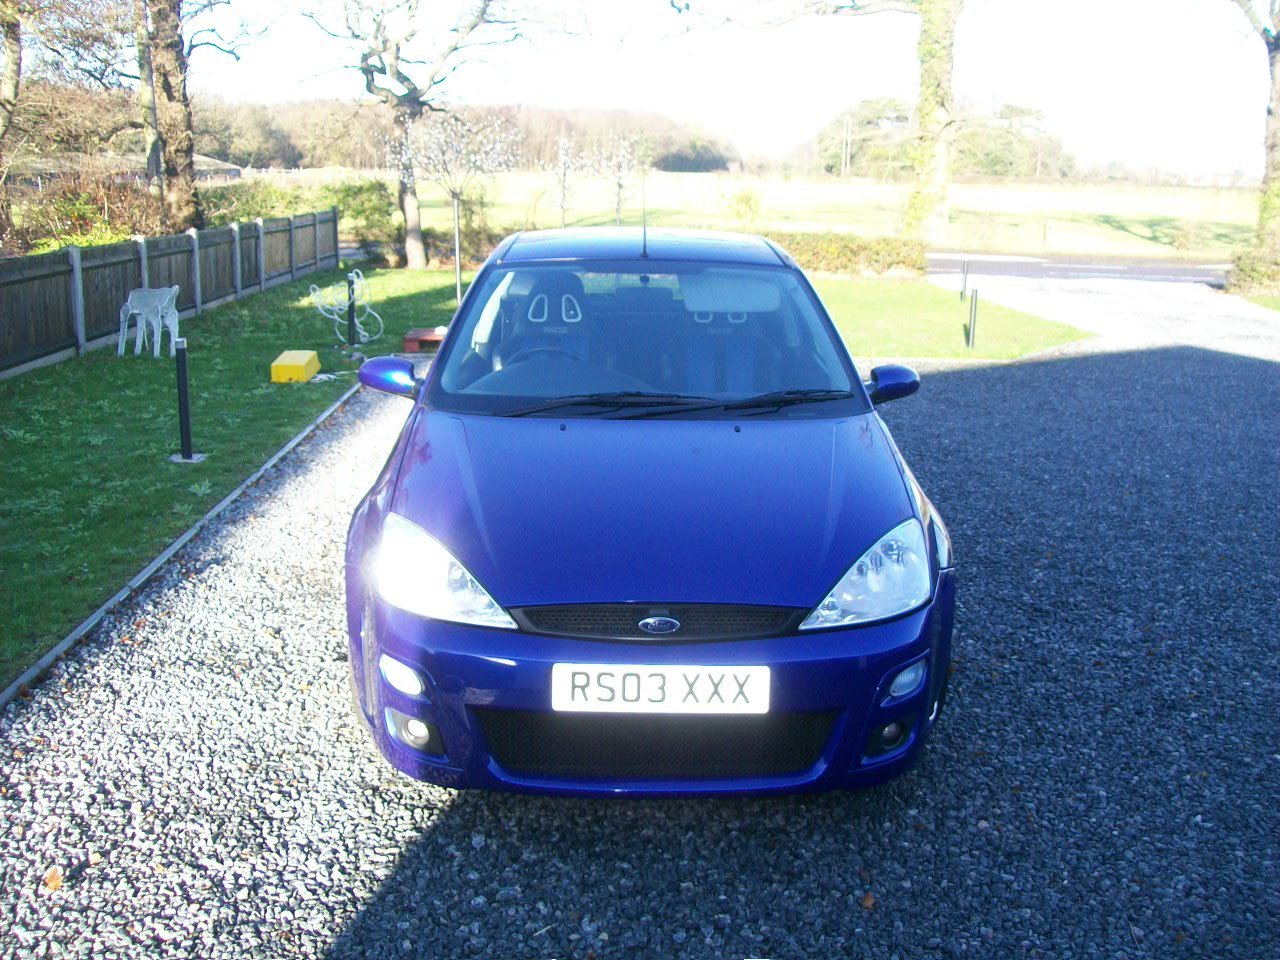 2003 Ford focus rs mk1 For Sale (picture 3 of 4)